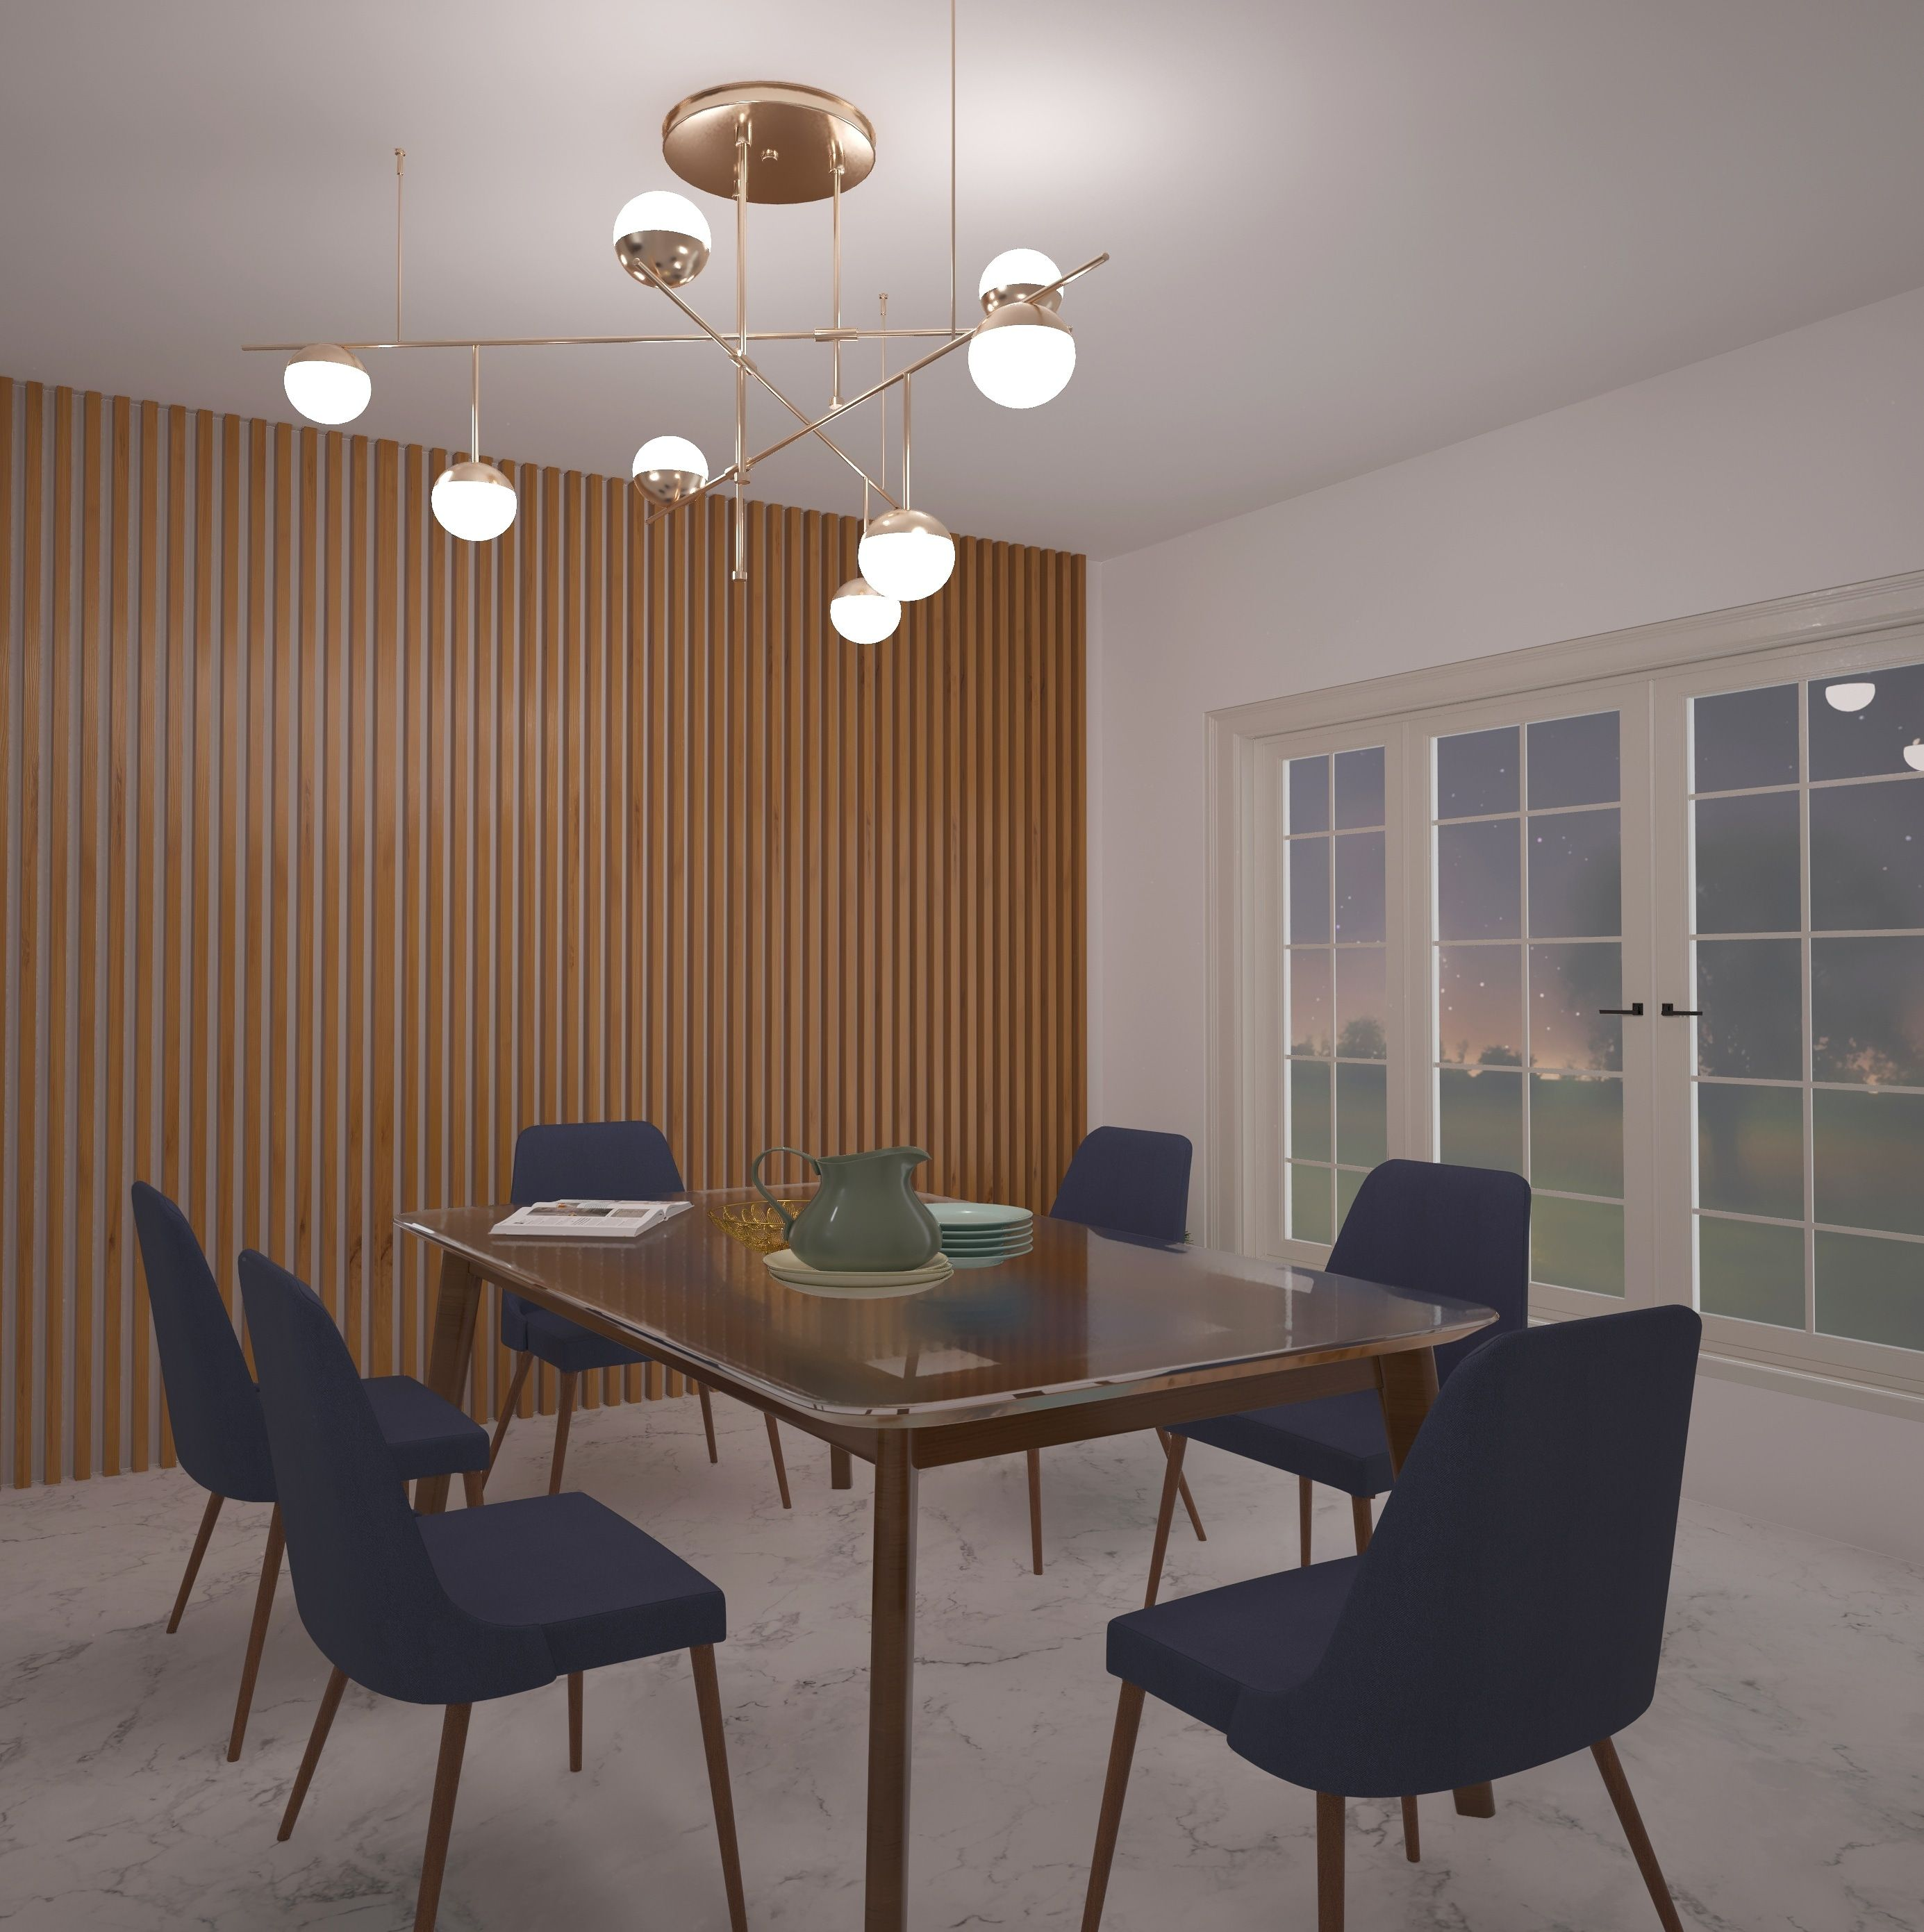 Pin by styldod on Dining Room Ideas | Dining area decor ...